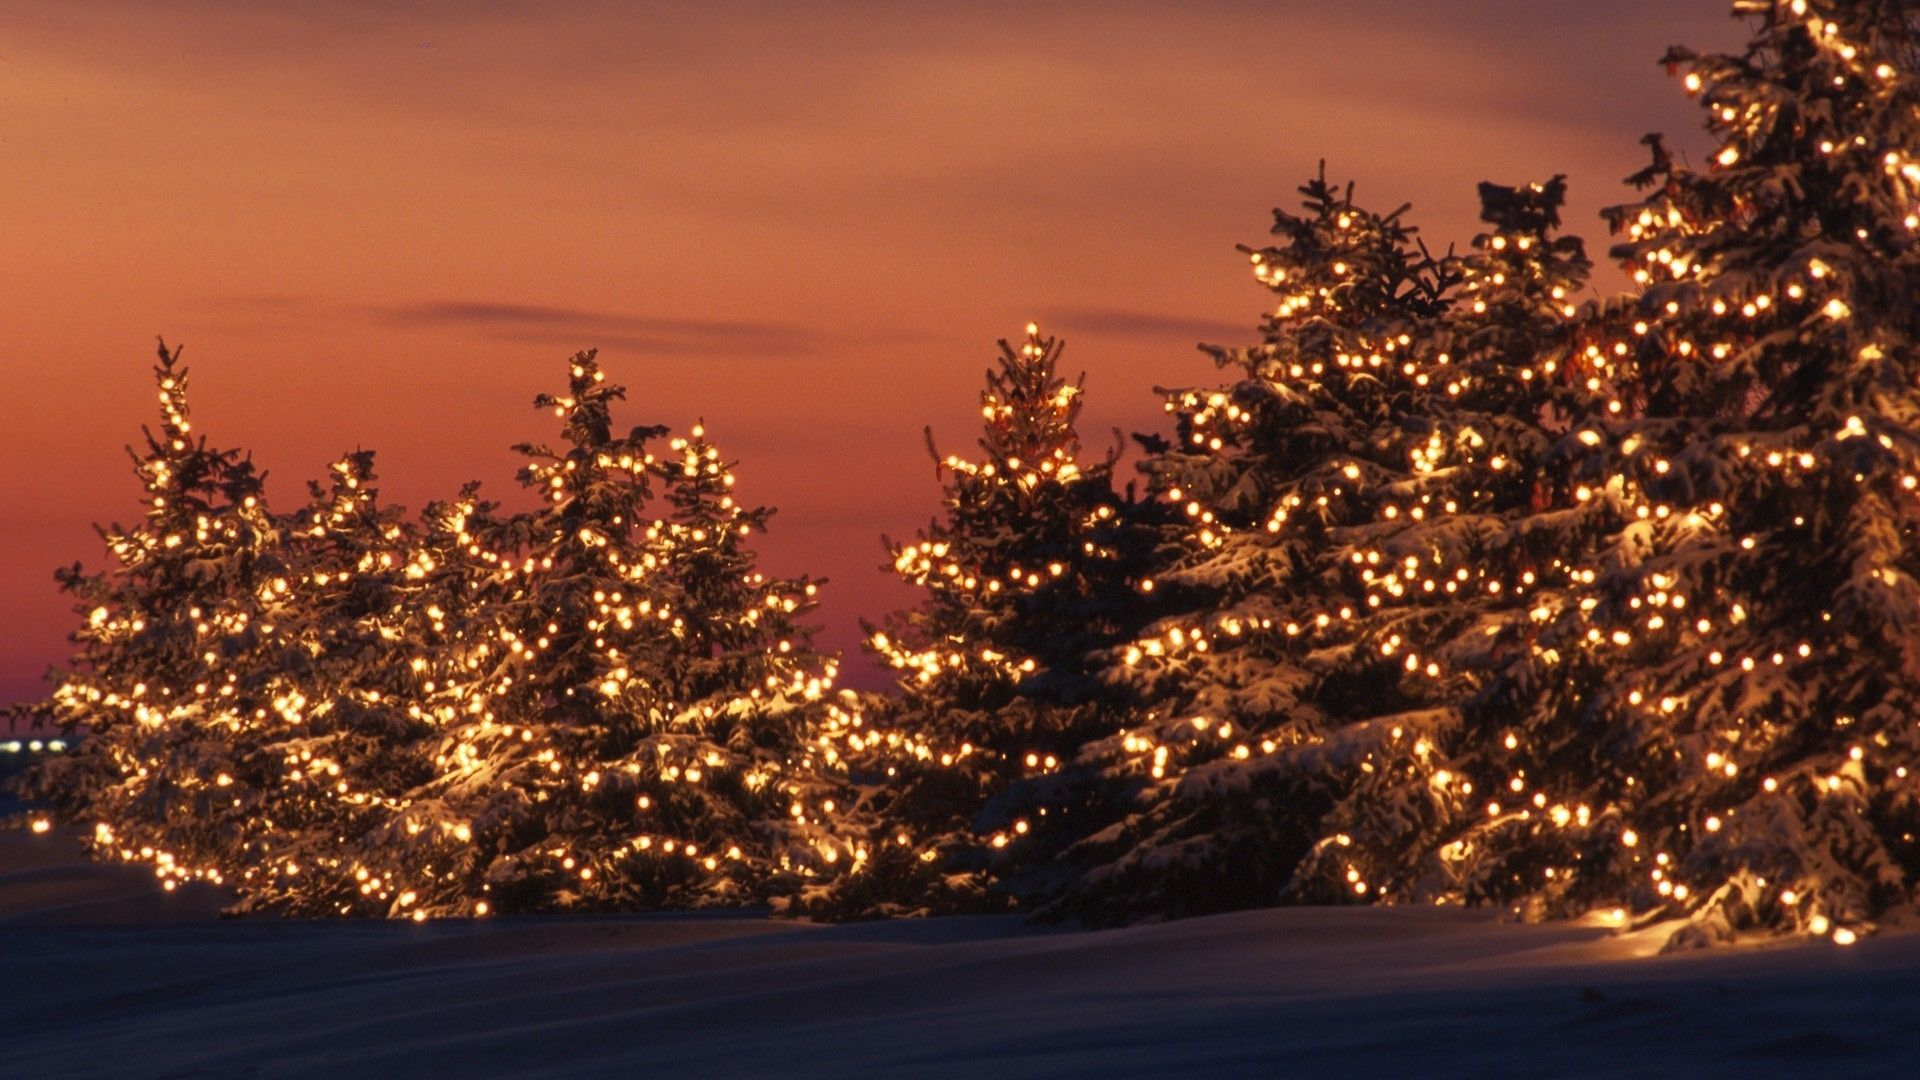 1920x1080 Free-Desktop-Christmas-Lights-Wallpapers-Winter | wallpaper.wiki